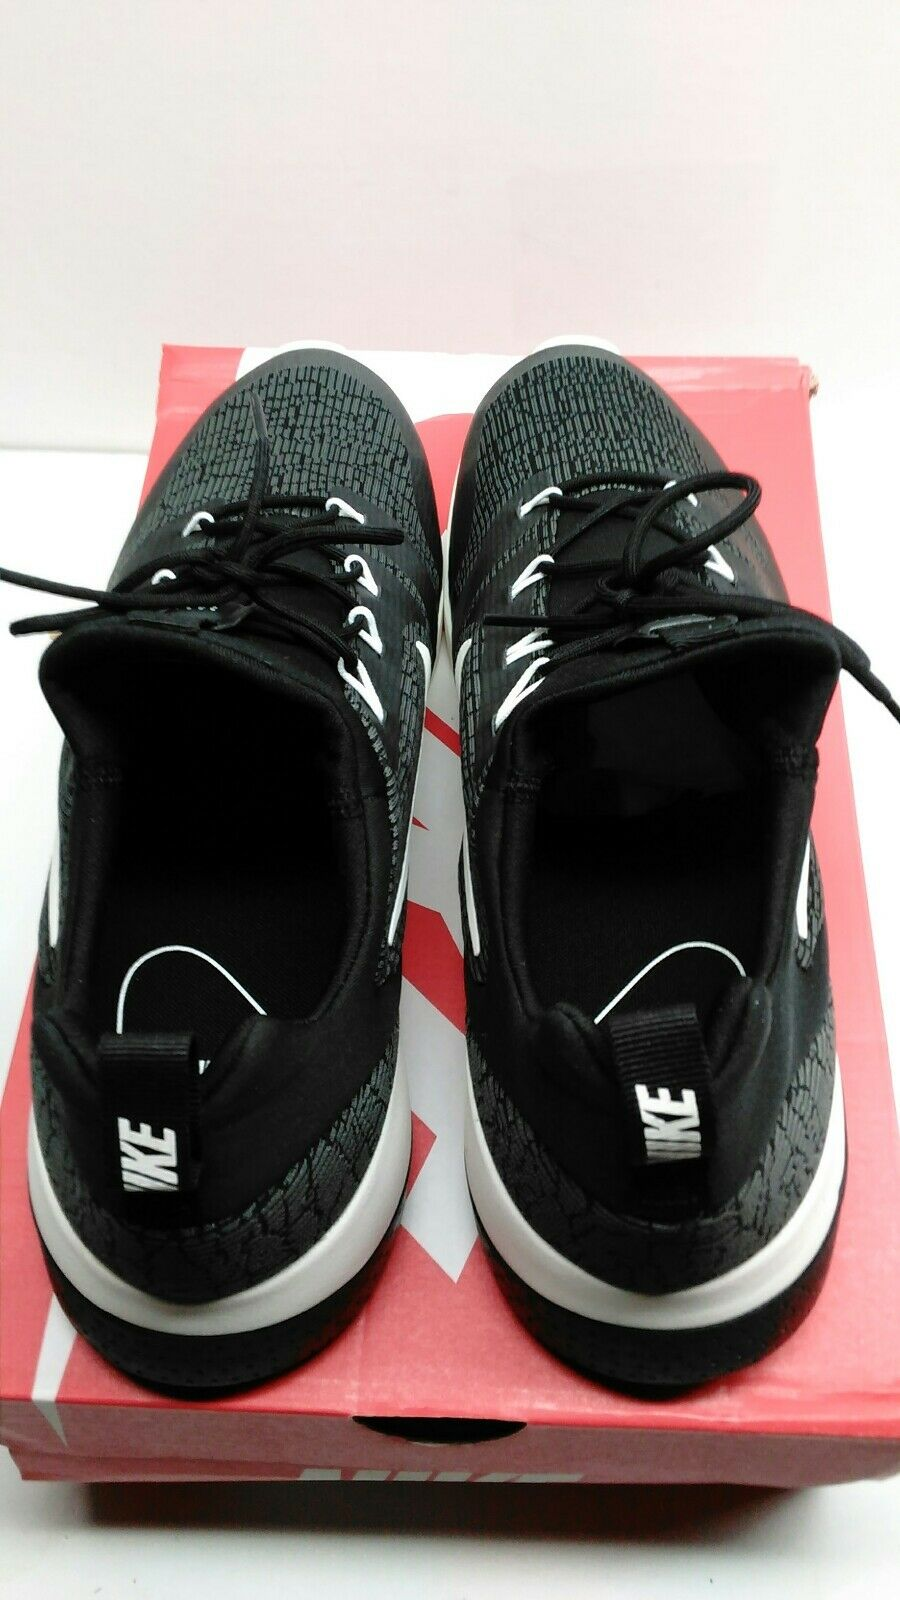 40e641609284 ... NIB MENS SIZE 12 NIKE CK RACER SNEAKERS Black Black Black and White  916780-001 ...